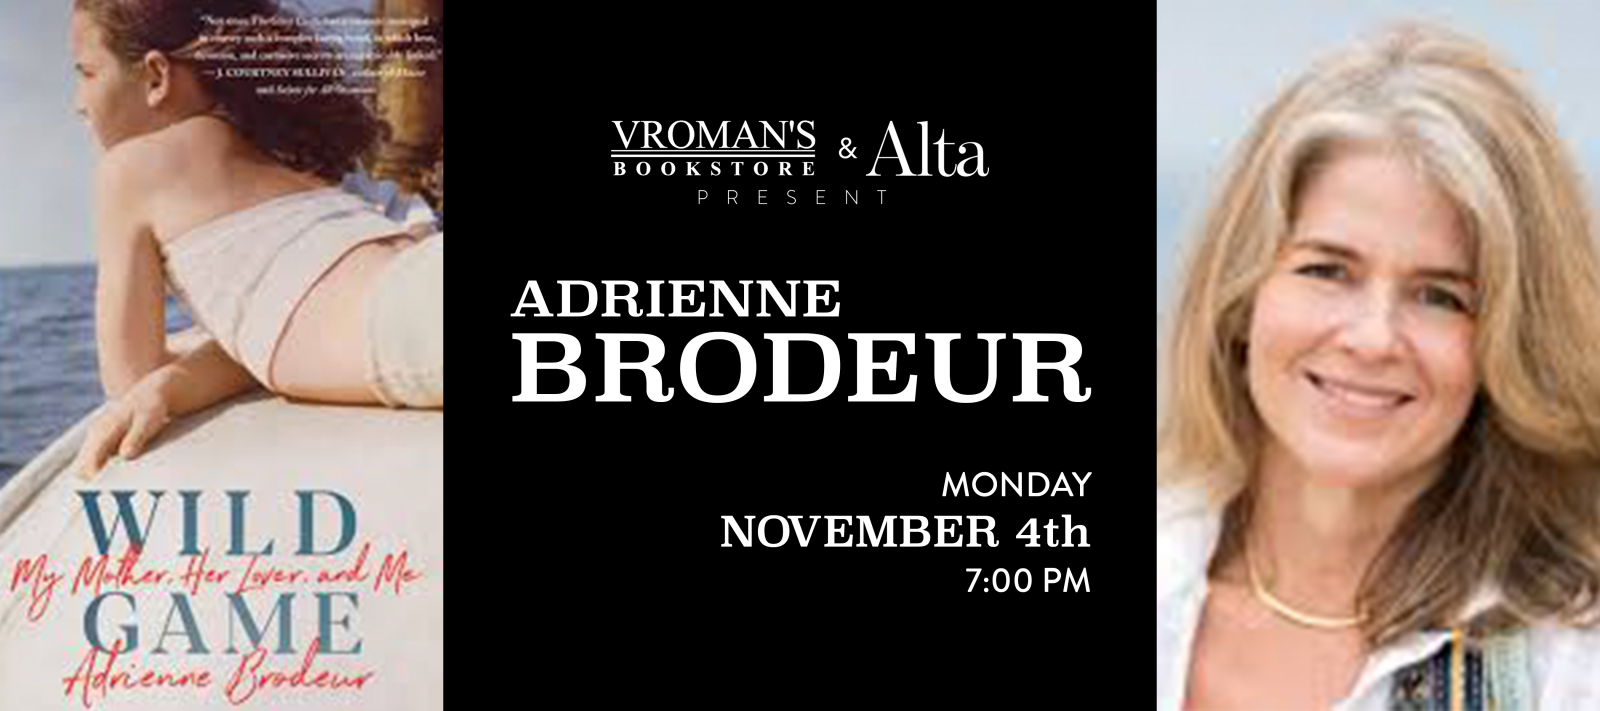 book signing with Adrienne Brodeur Monday November 4 at 7pm